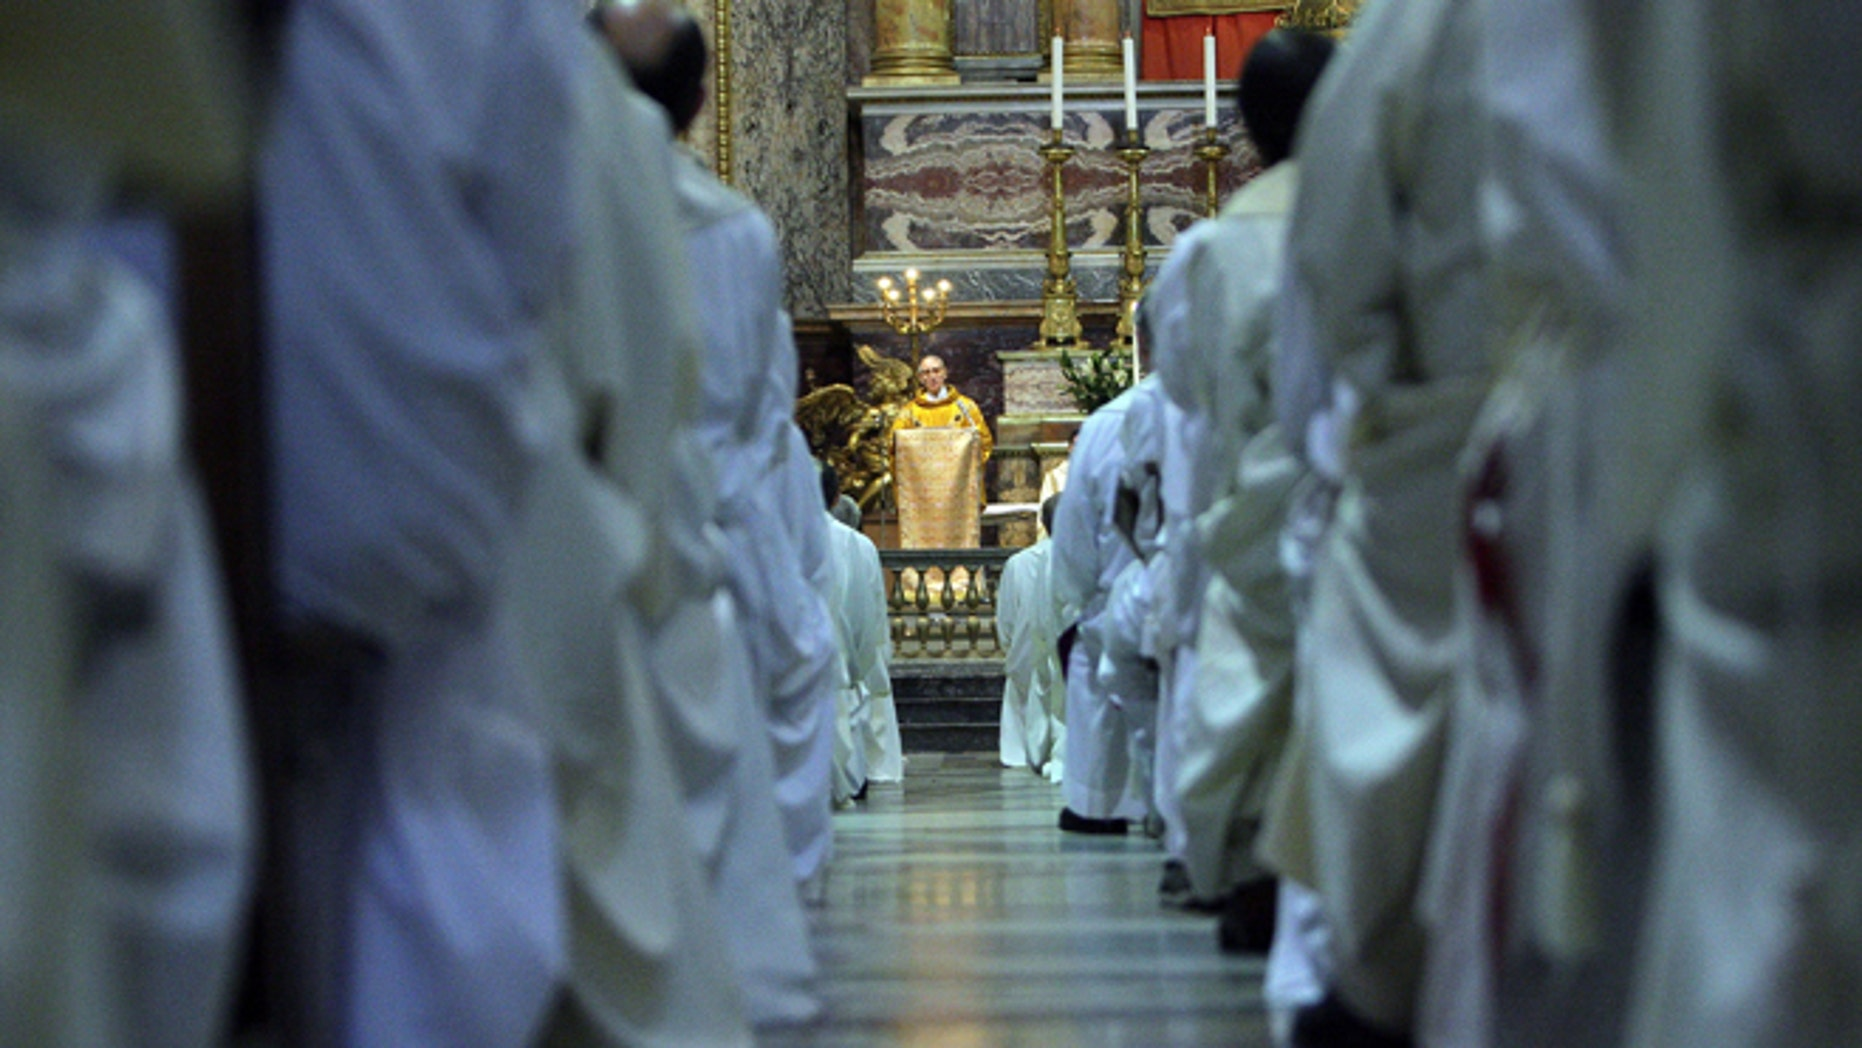 ROME - JANUARY 20:  ROME New elected Superior General of the Society of Jesus father Adolfo Nicolas of Spain celebrates his first mass as head of Jesuits at the Church of Jesus, January 20, 2008, in Rome Italy.  The Superior  of Jesuits is known also as The Black Pope.  (Photo by Franco Origlia/Getty Images)